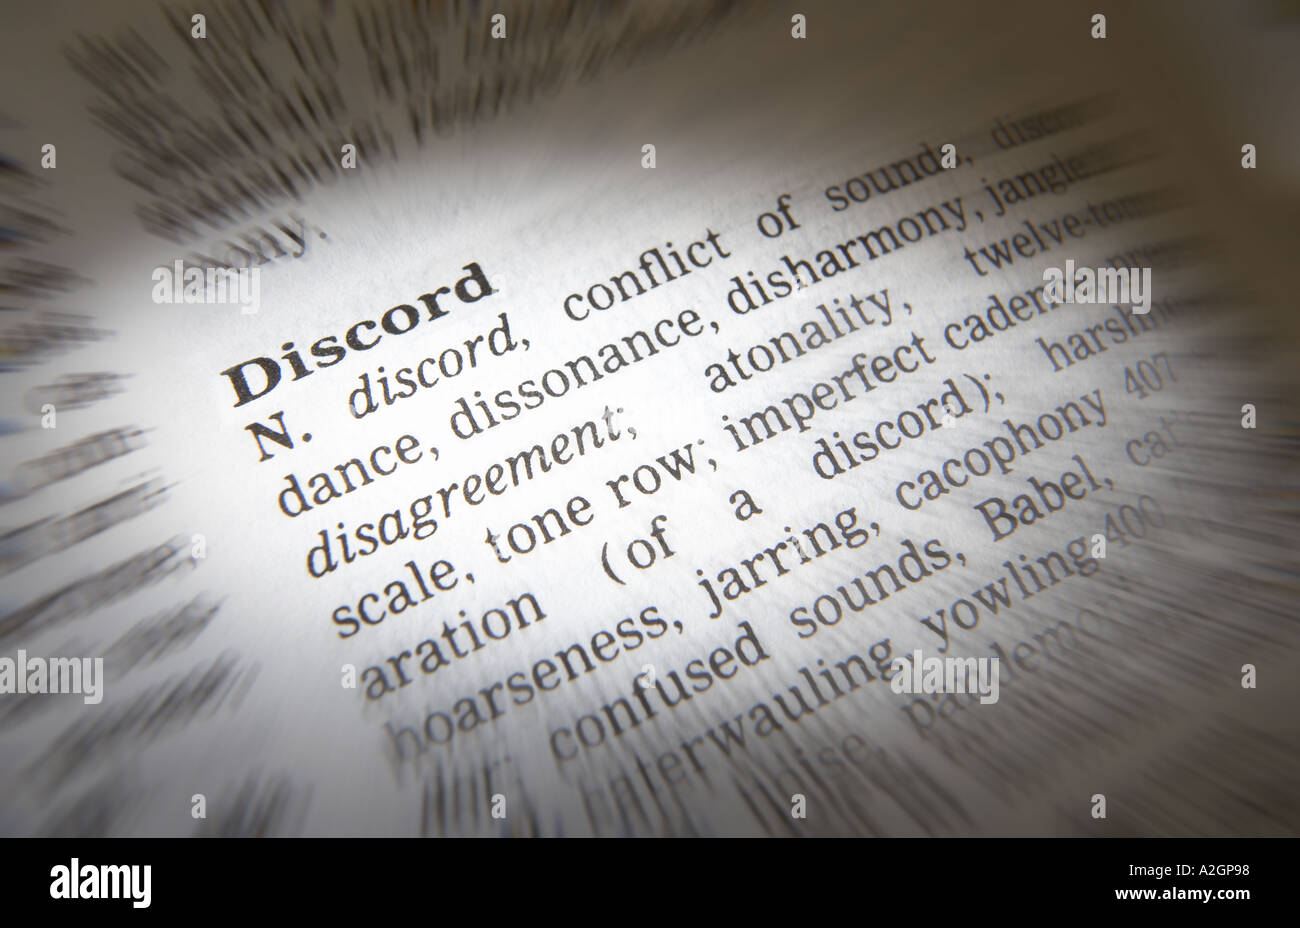 THESAURUS PAGE SHOWING DEFINITION OF WORD DISCORD - Stock Image